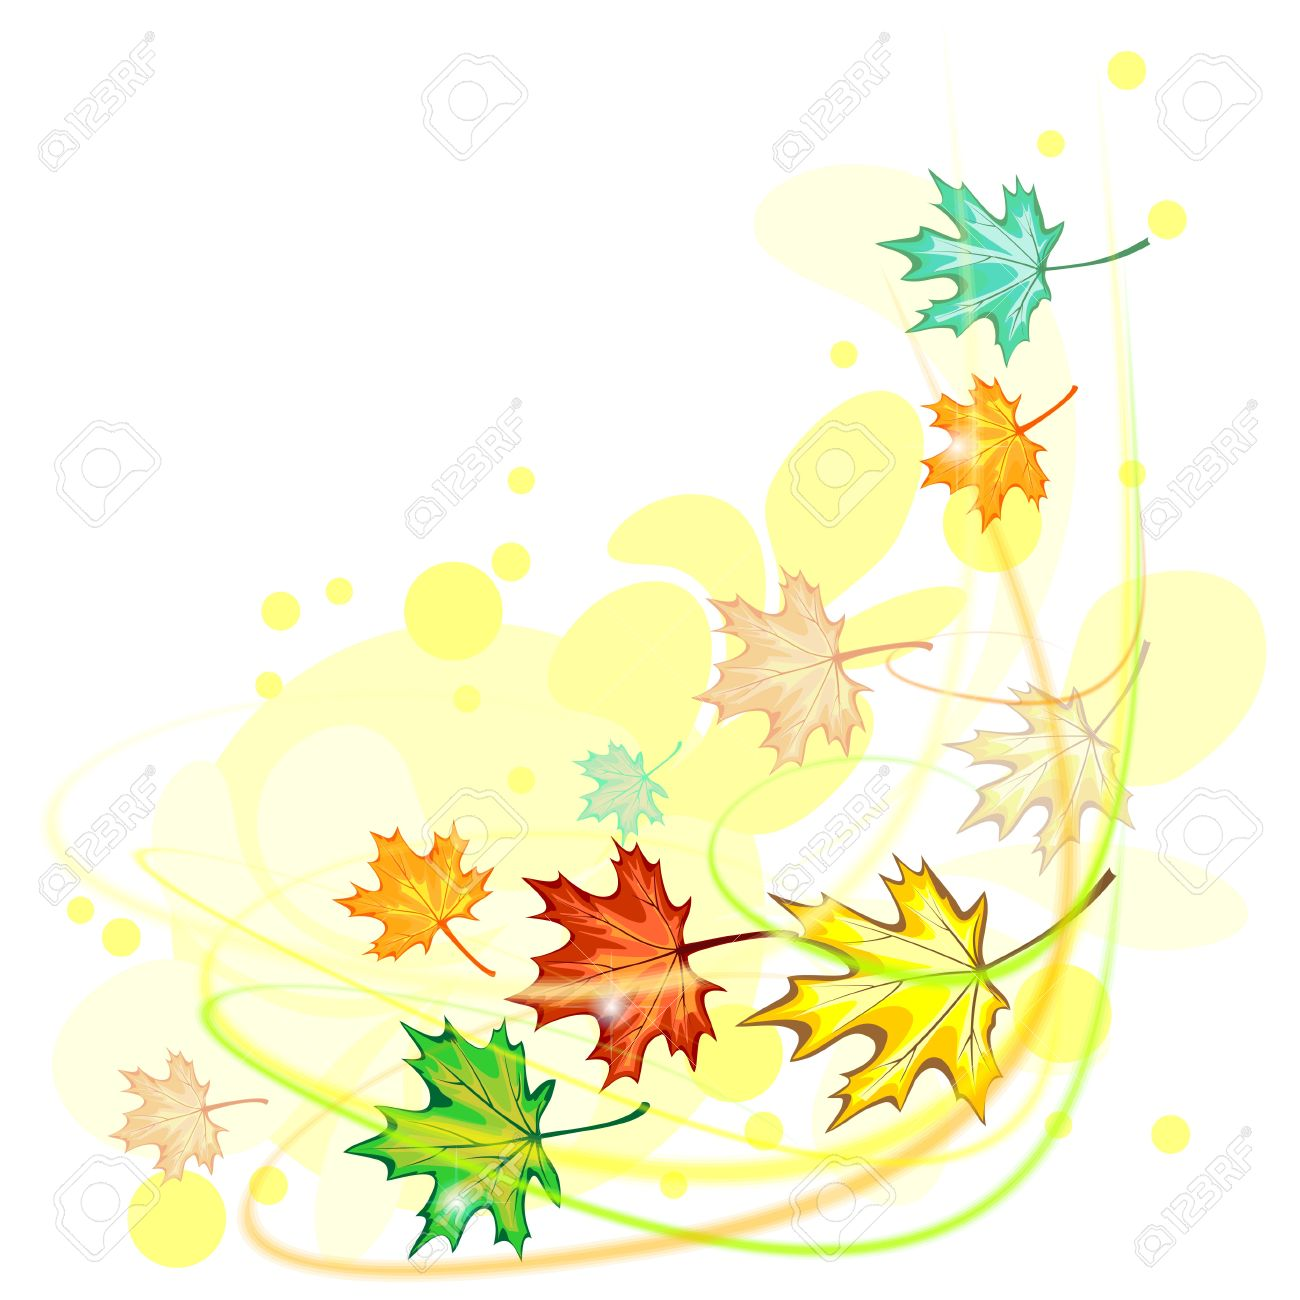 Colorful Autumn Maple Leaves Gone With Wind Royalty Free Cliparts ...